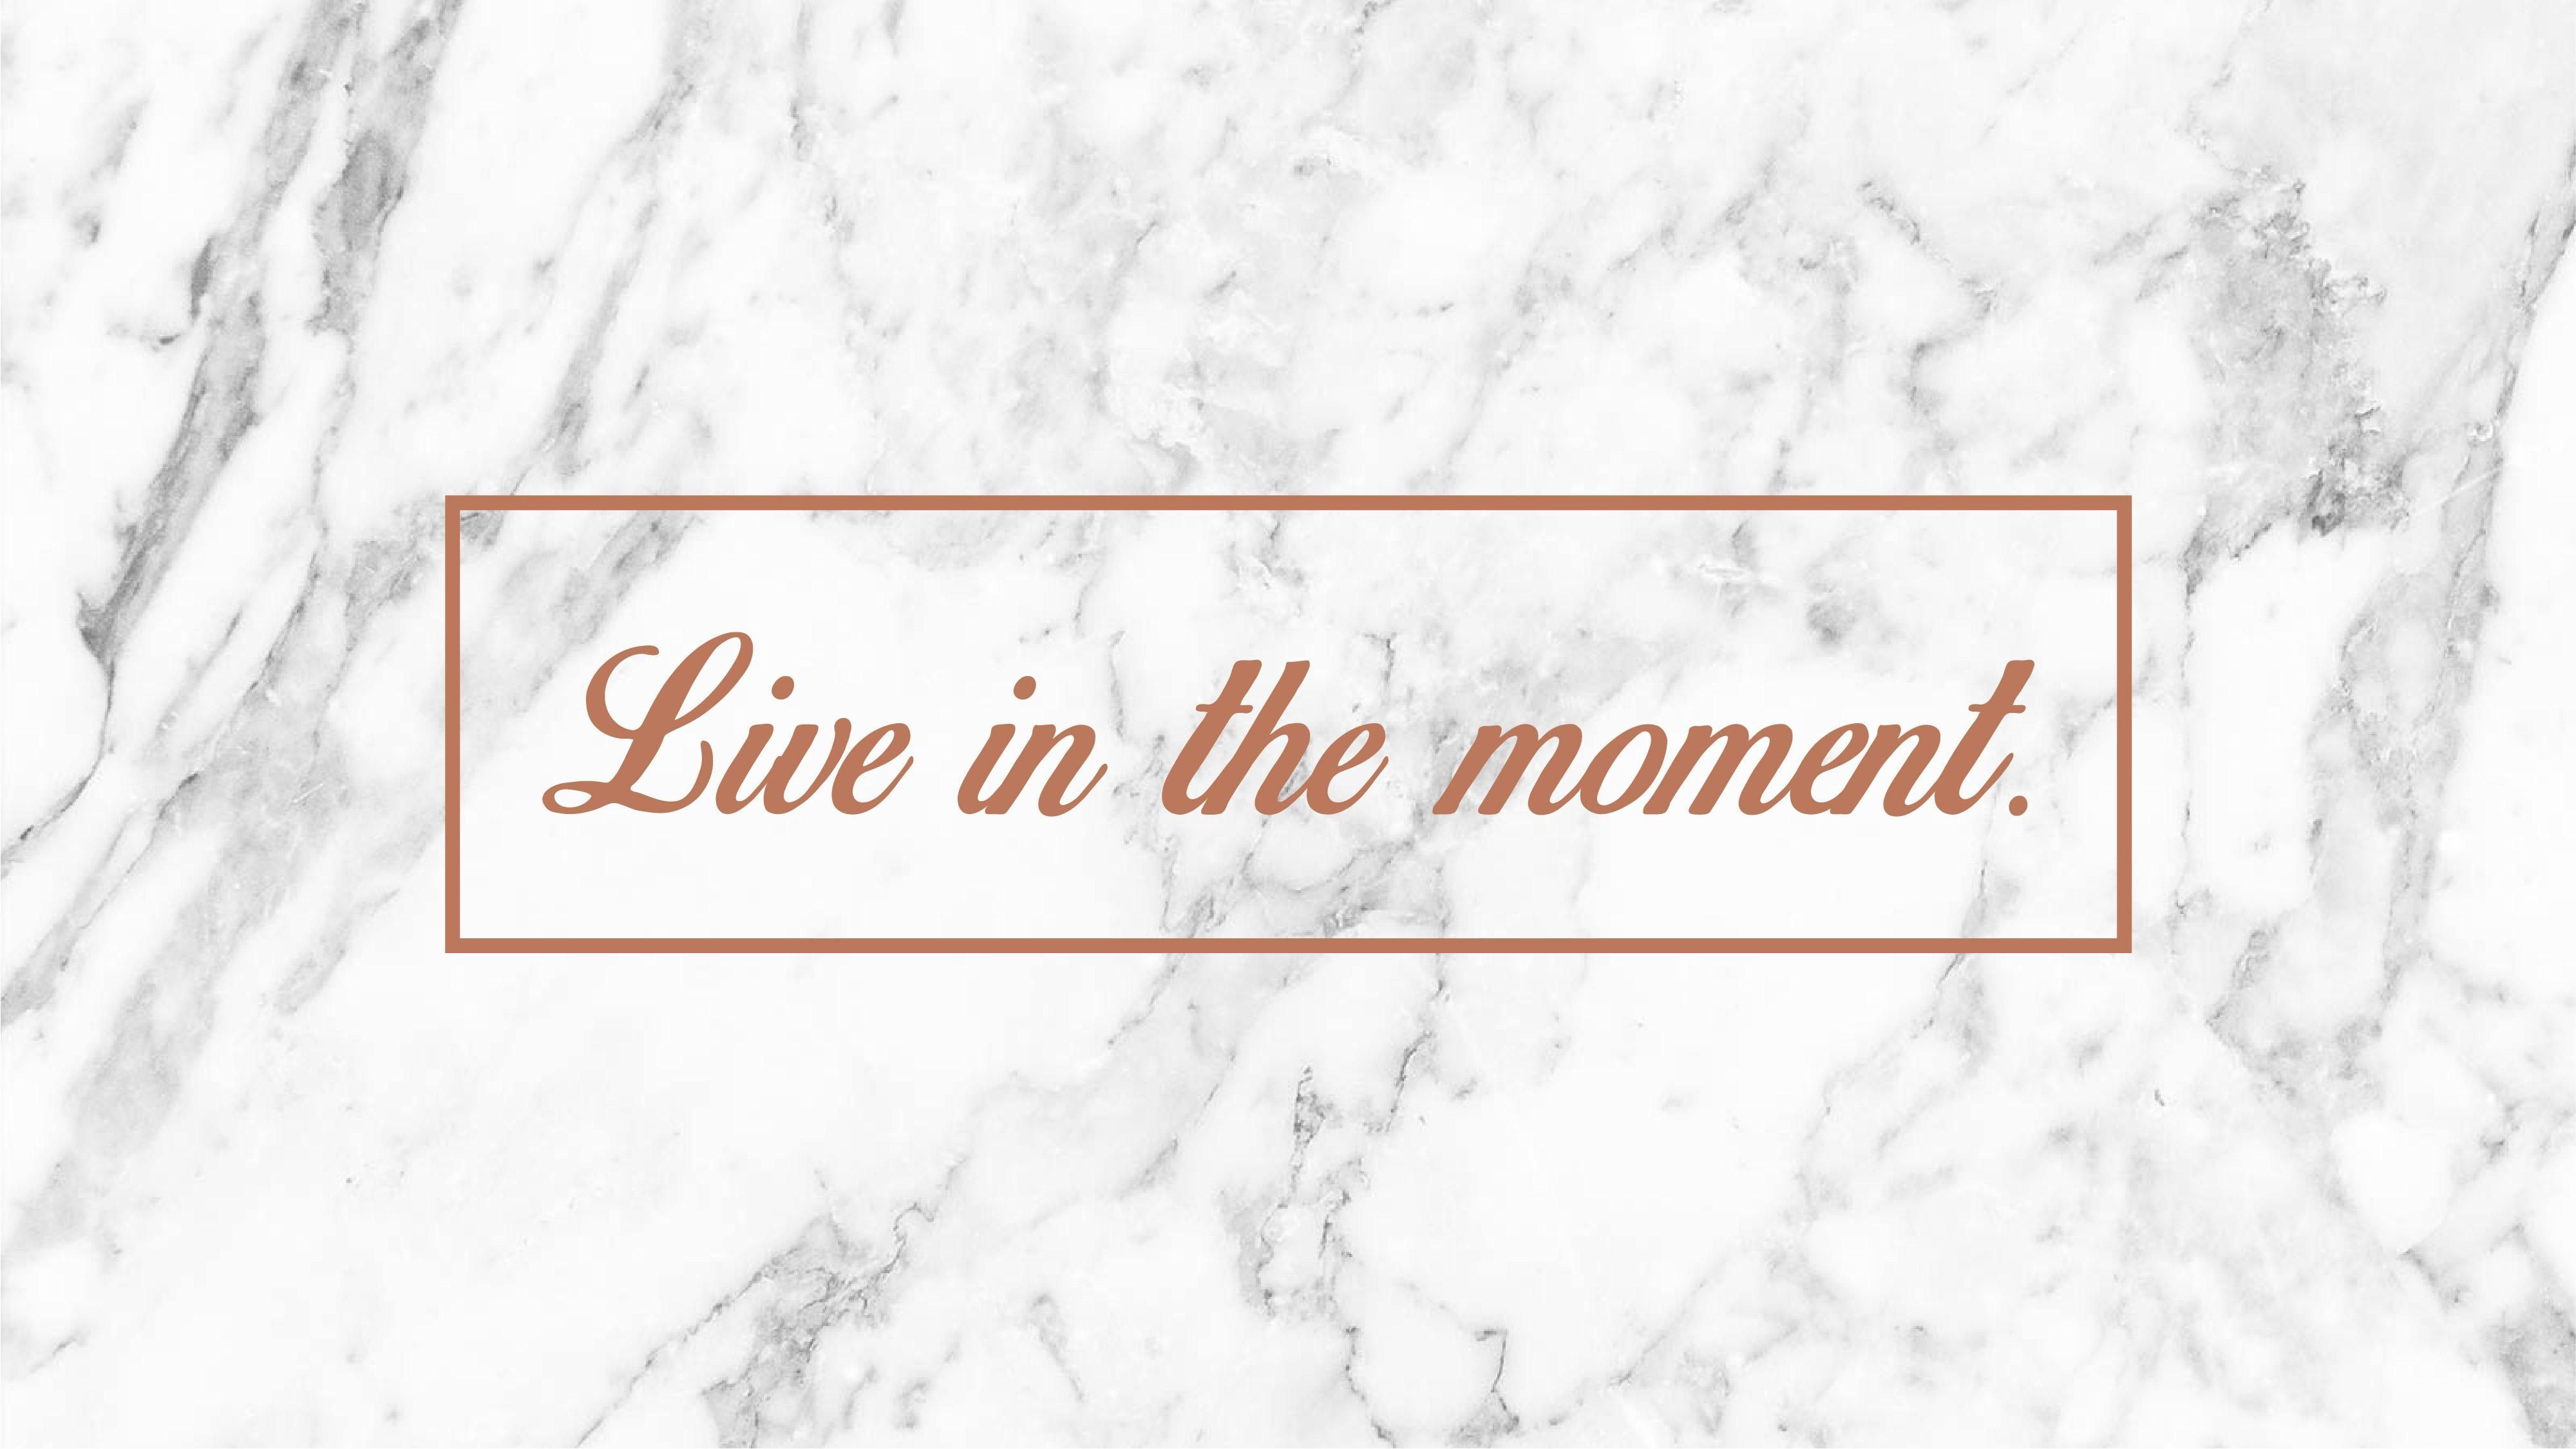 Live In The Moment Marble Wallpaper Marble Wallpaper Cute Desktop Wallpaper Cute Cat Wallpaper